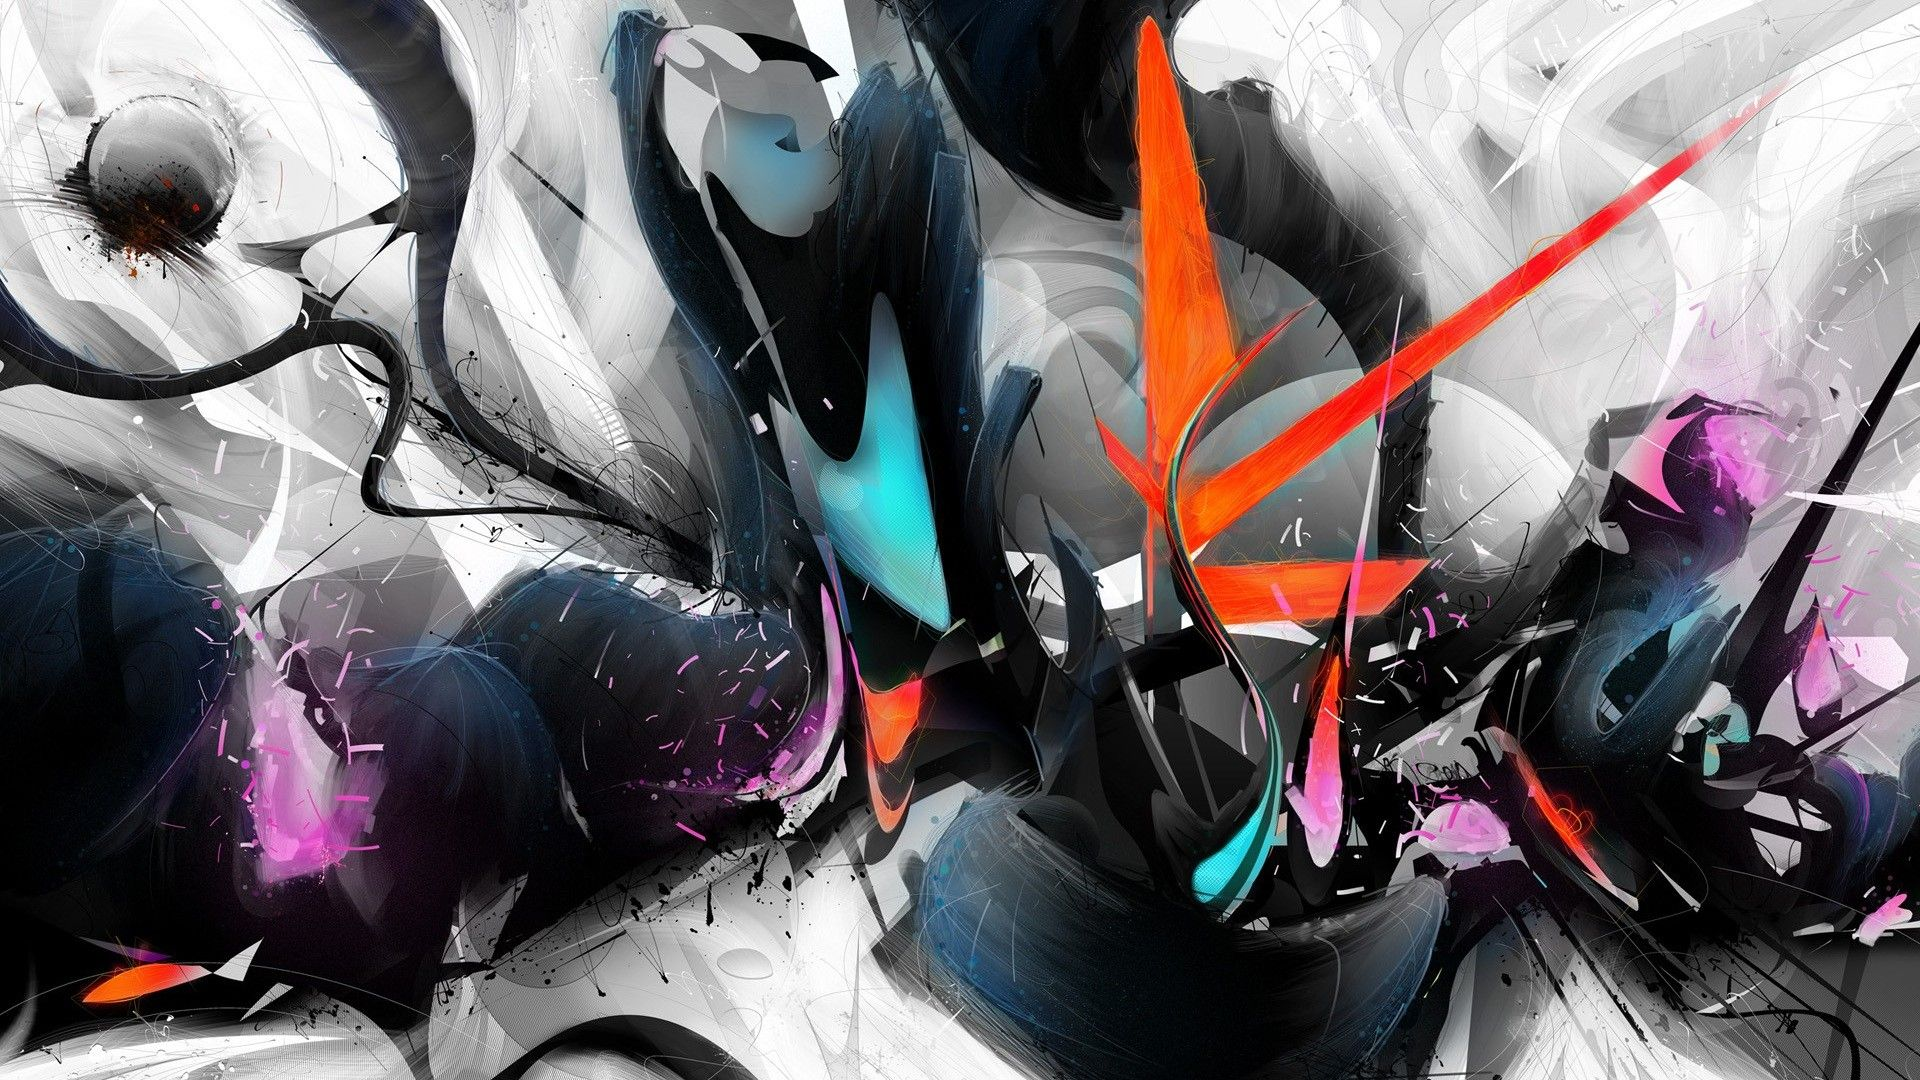 Res 1920x1080 Cool 3d Abstract Wallpapers For Laptops